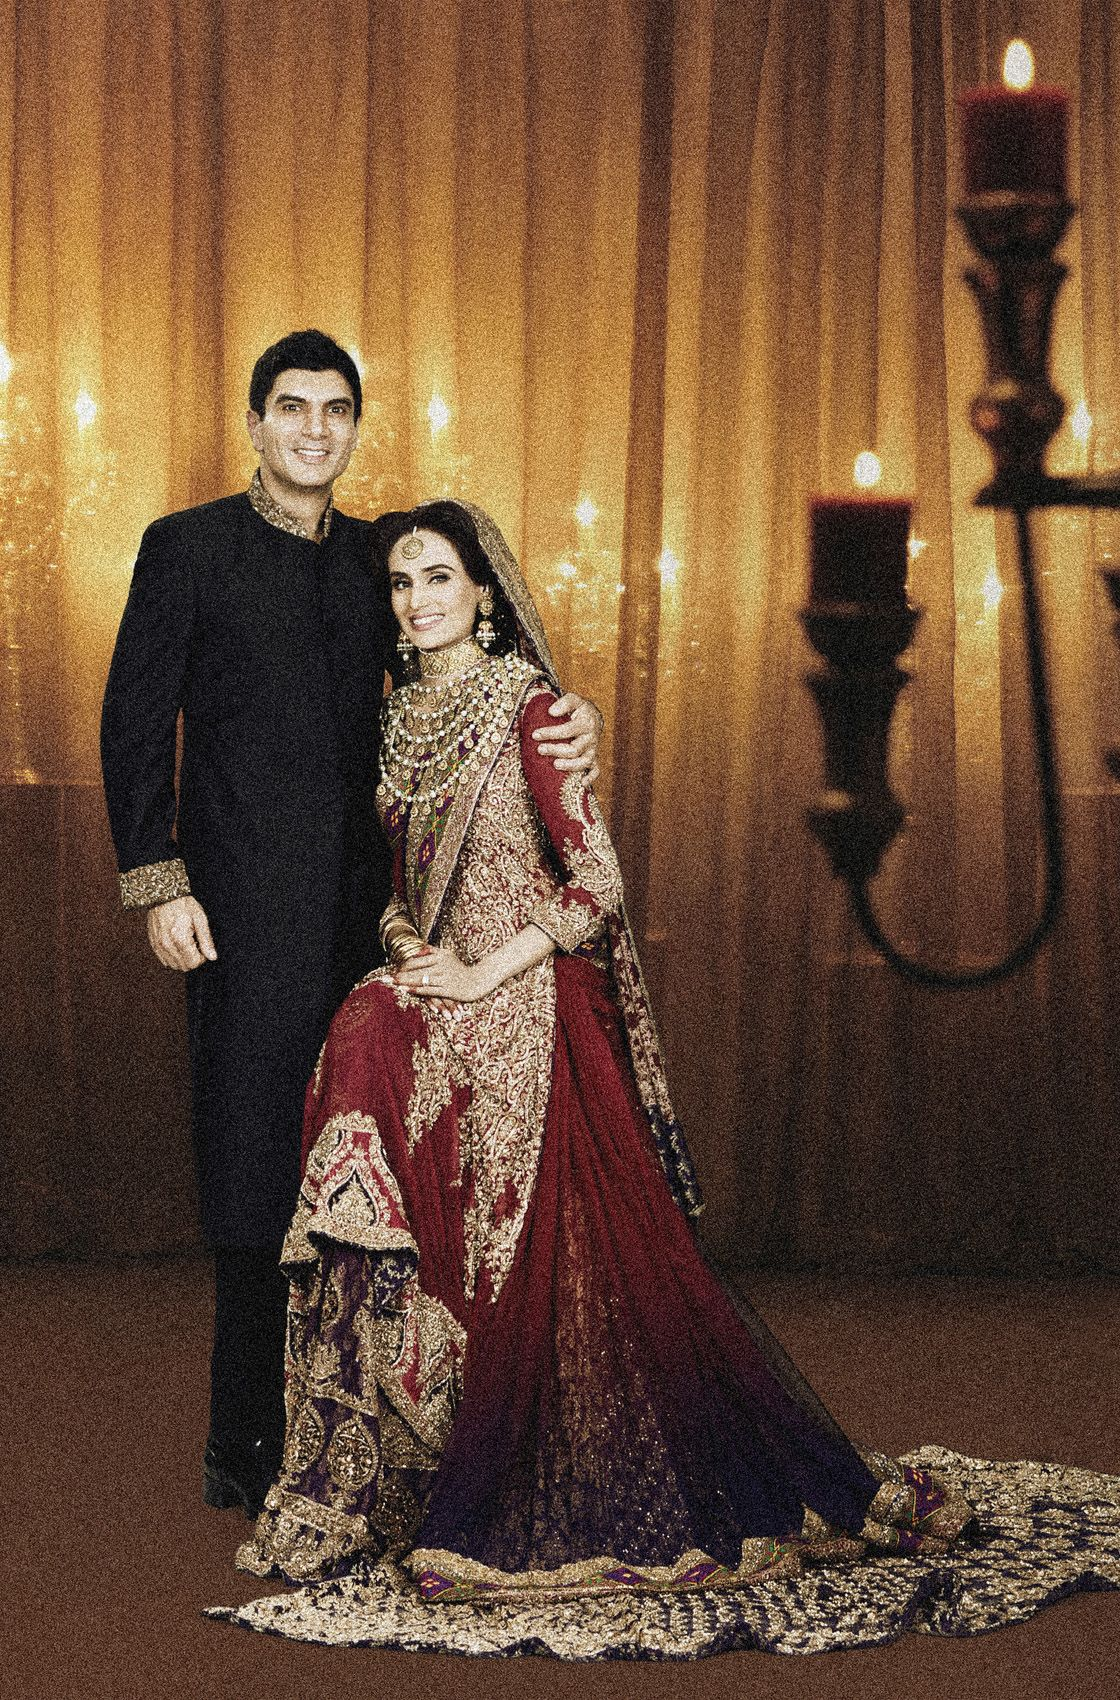 Mehreen Syed dazzling at her Big Day with her husband, Ahmad Shaikh